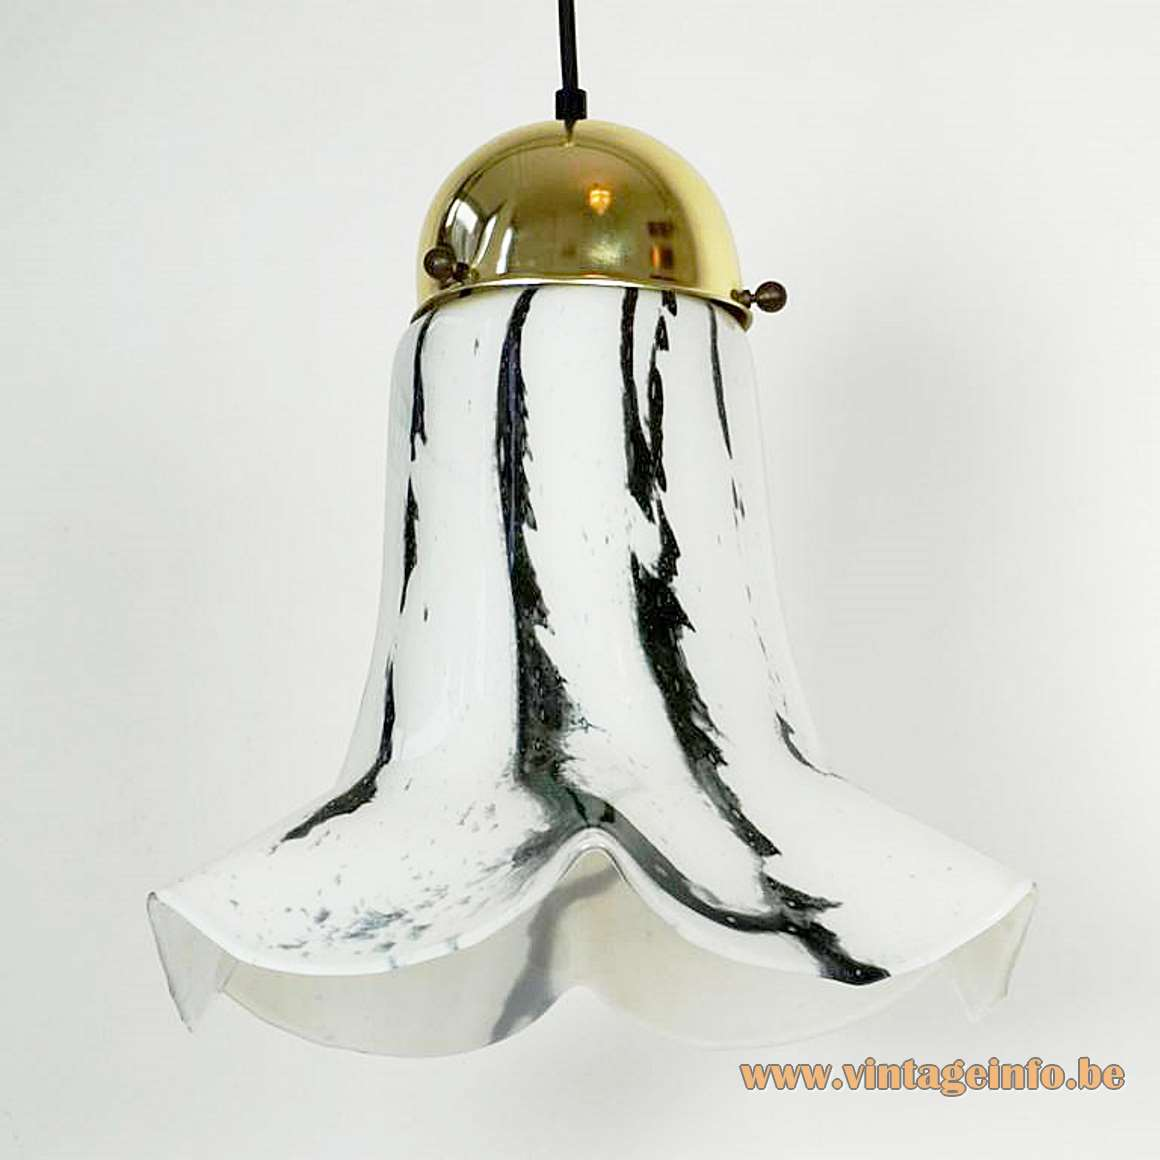 Peill + Putzler black & white petunia pendant lamp striped glass hanging flower 1960s 1970s Germany